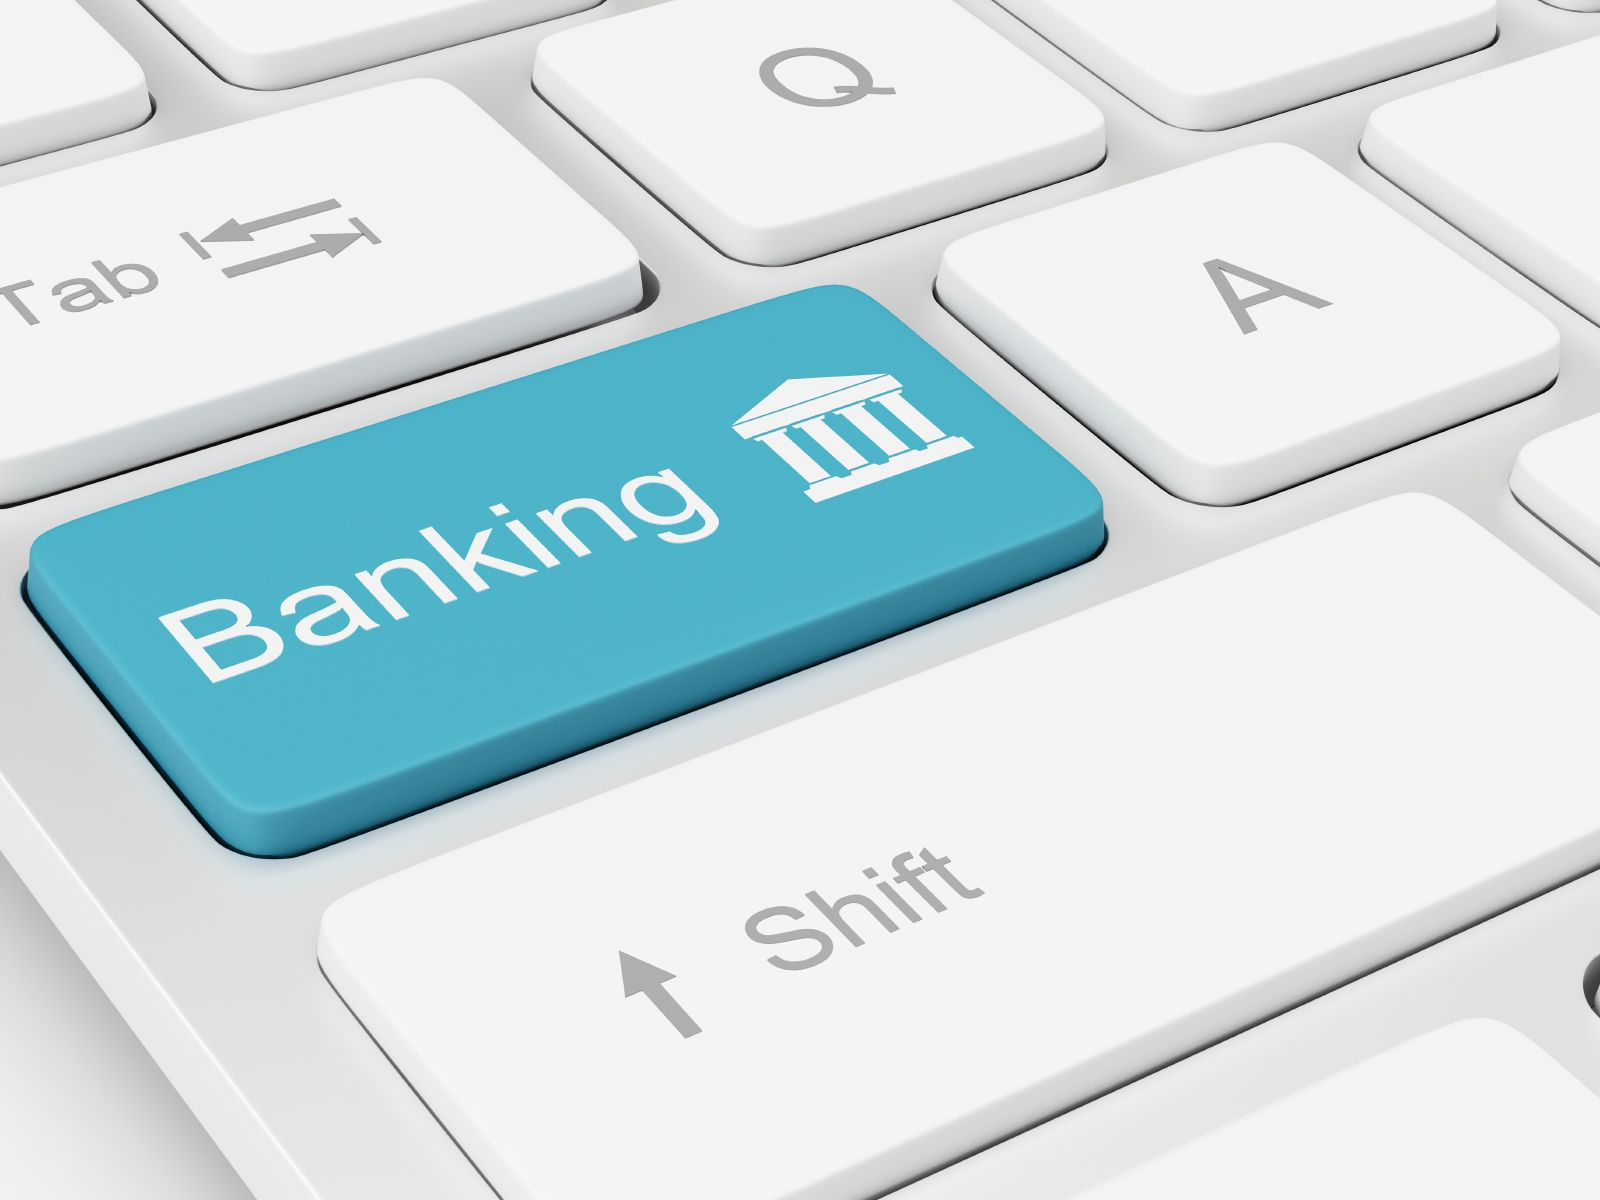 an overview of the changing banking Banking regulation (eg, repealing the dodd-frank act and introducing a 21st-century version of the glass-steagall act) is a major theme for donald trump's administration expect the industry to once again be turned on its head by capitol hill.